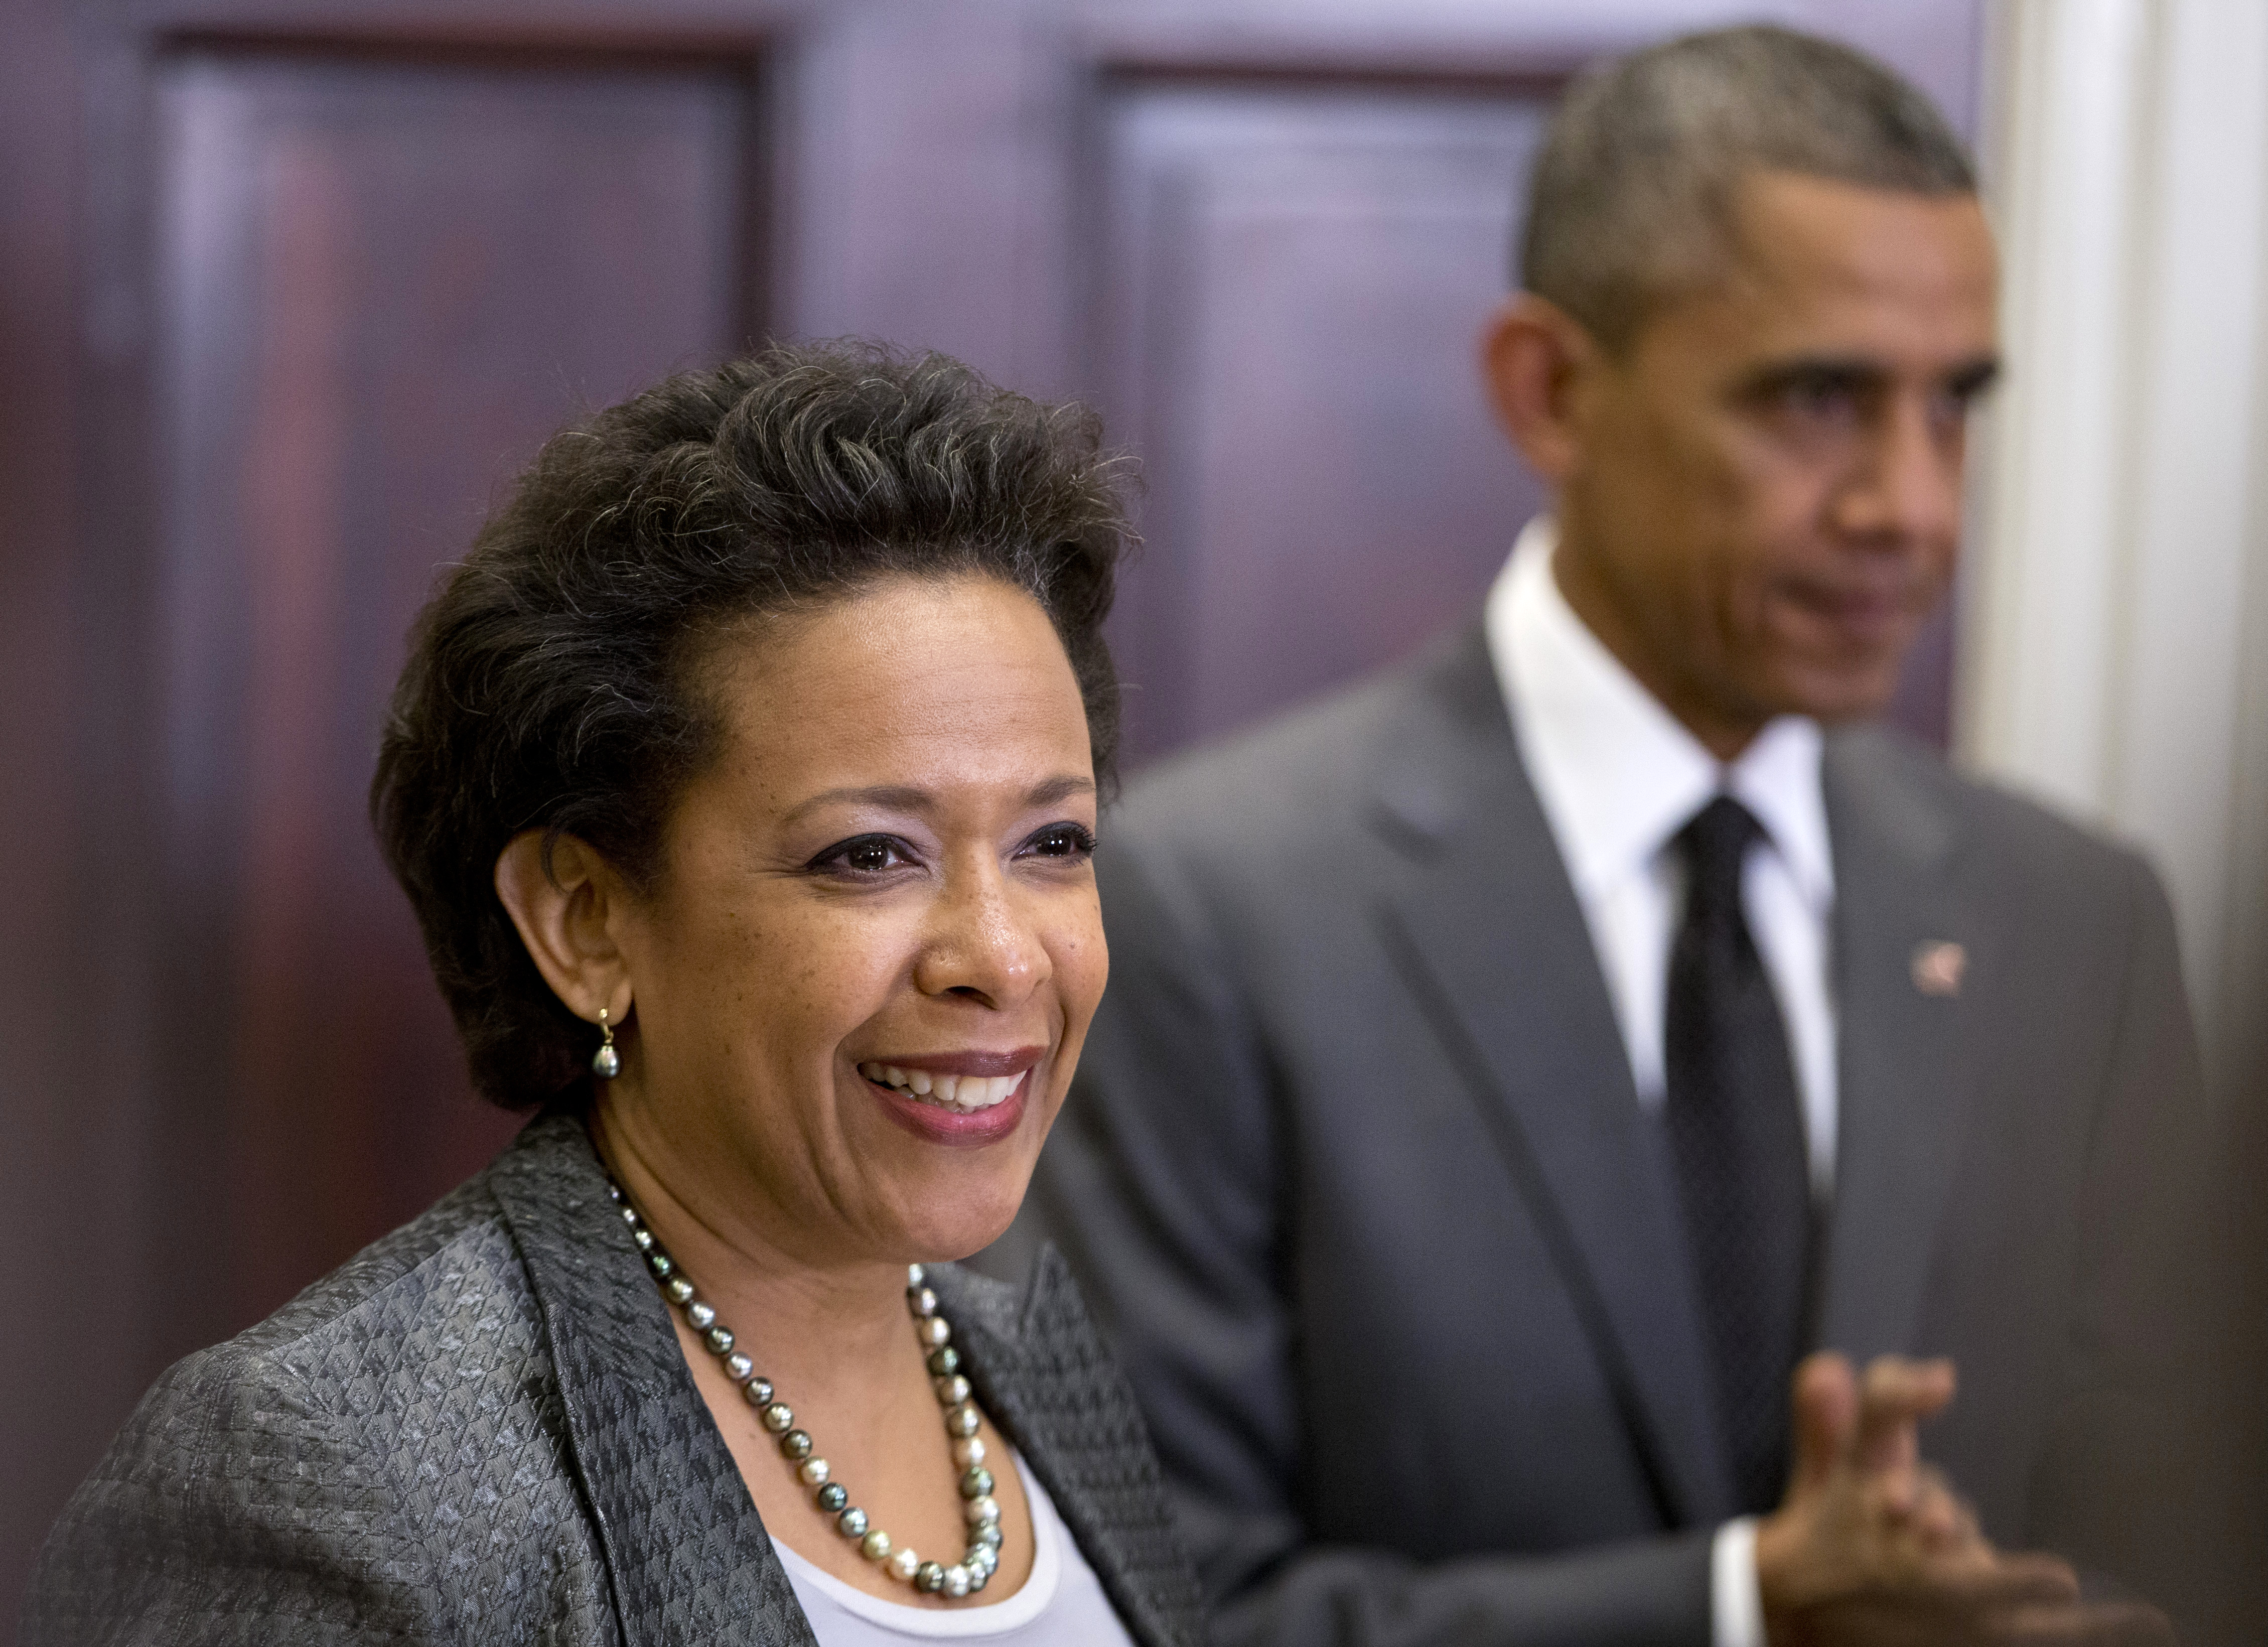 President Barack Obama listens at right as US Attorney Loretta Lynch speaks in the Roosevelt Room of the White House in Washington on Nov. 8, 2014.